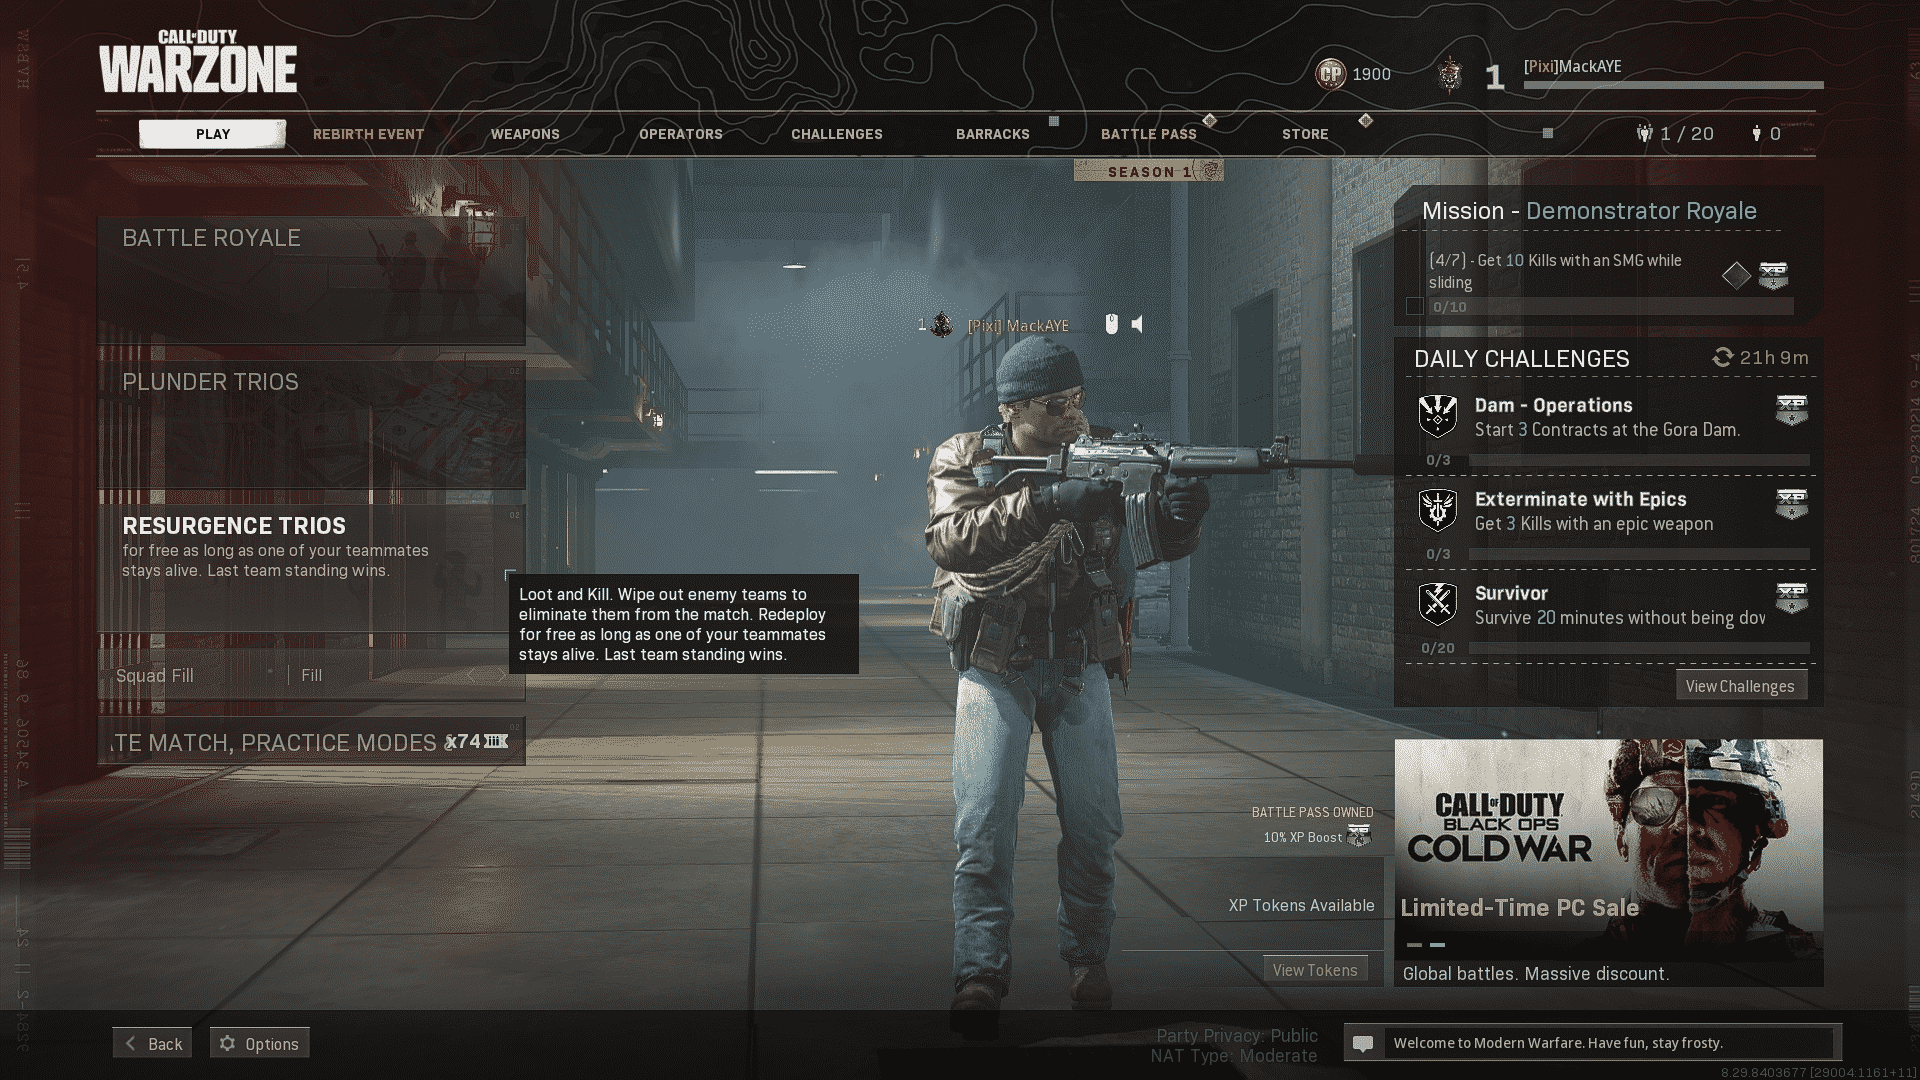 Resurgence in the Call of Duty: Warzone menus